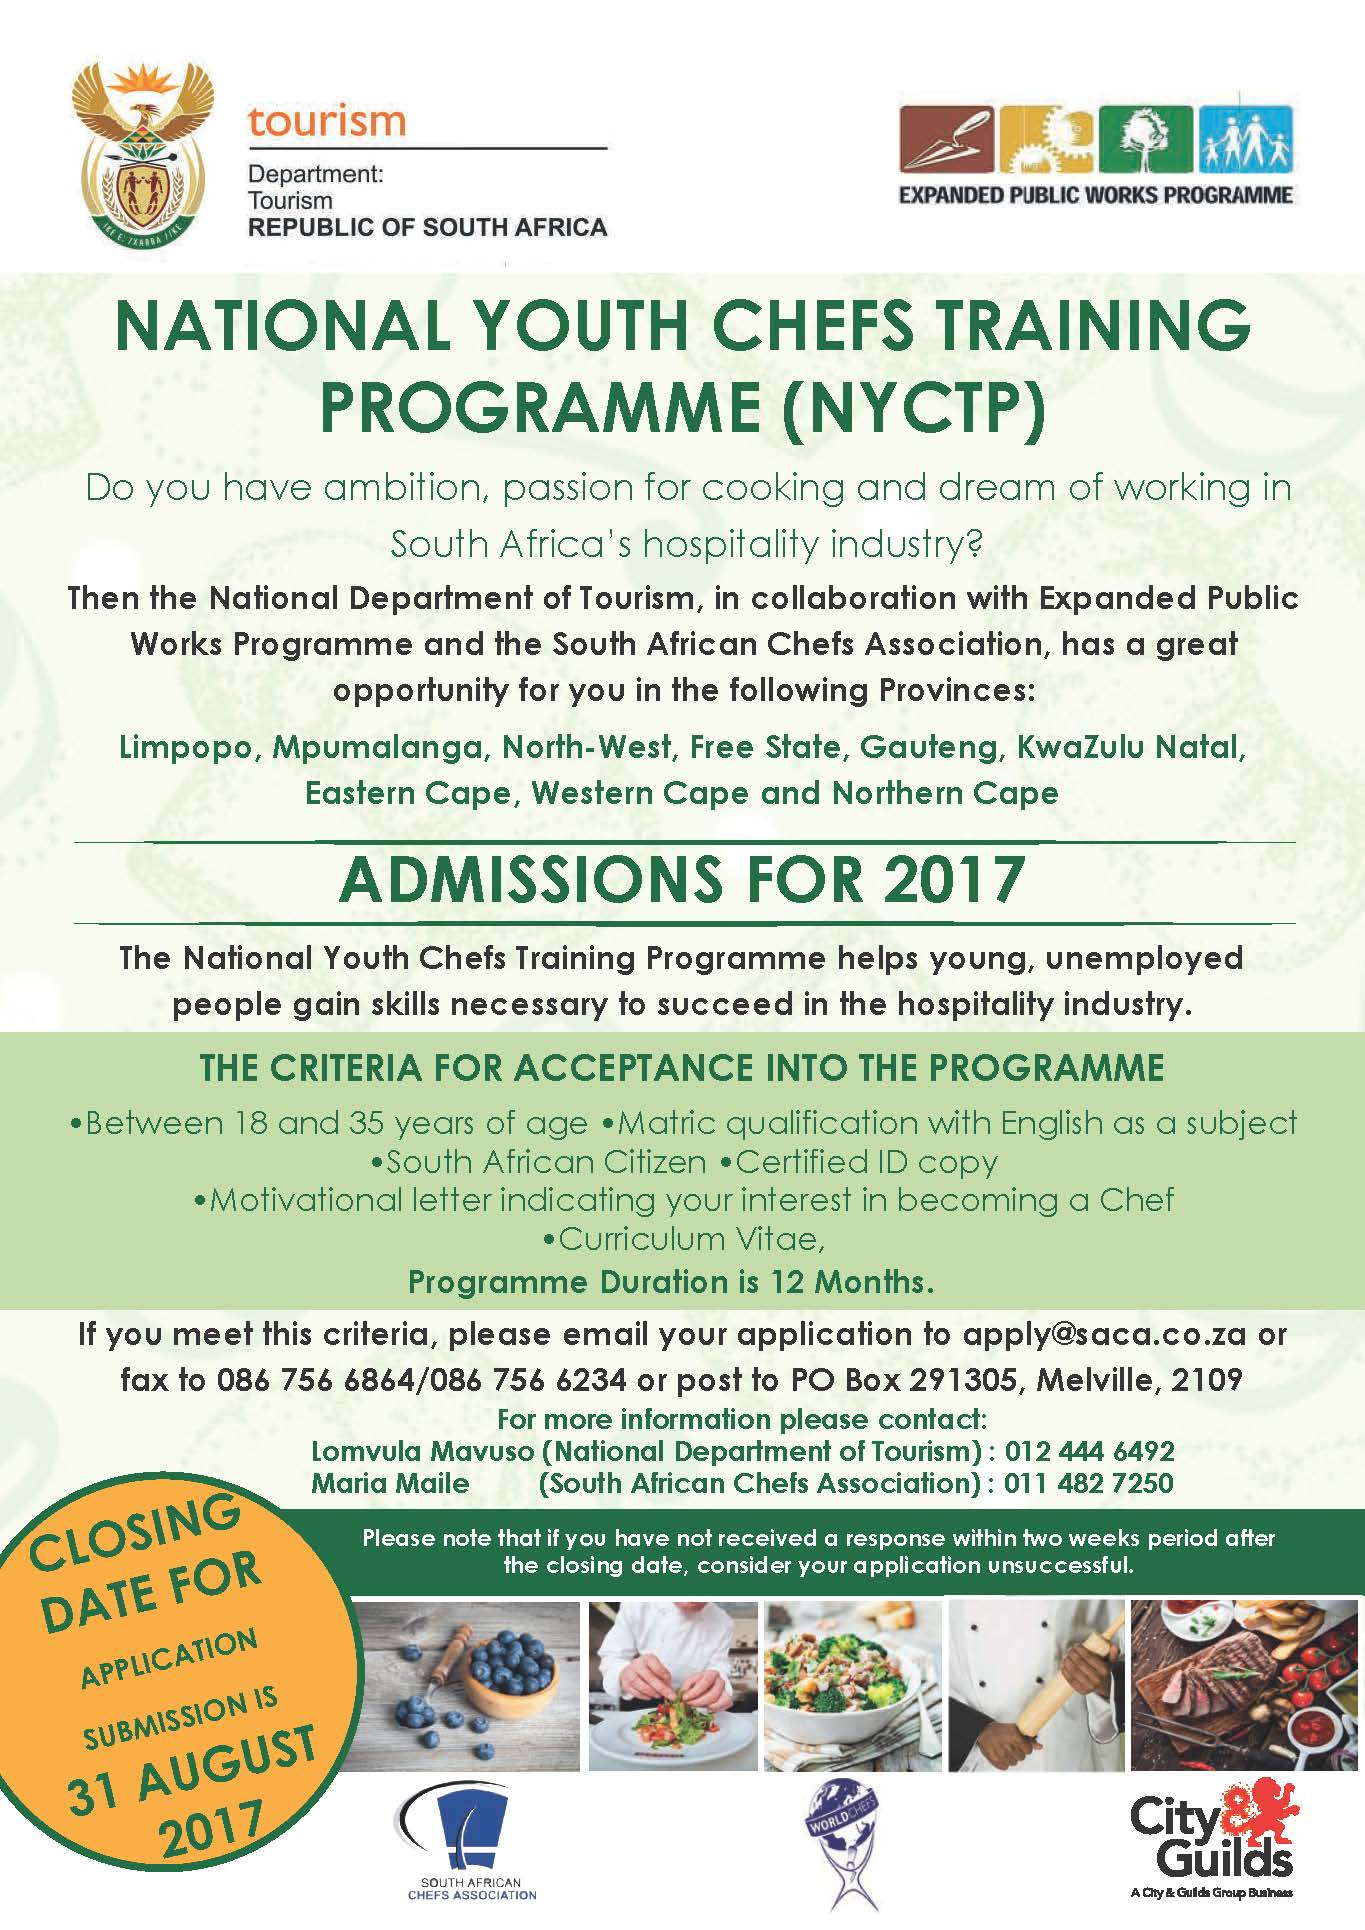 National Youth Chefs Training Programme_17082017.jpg